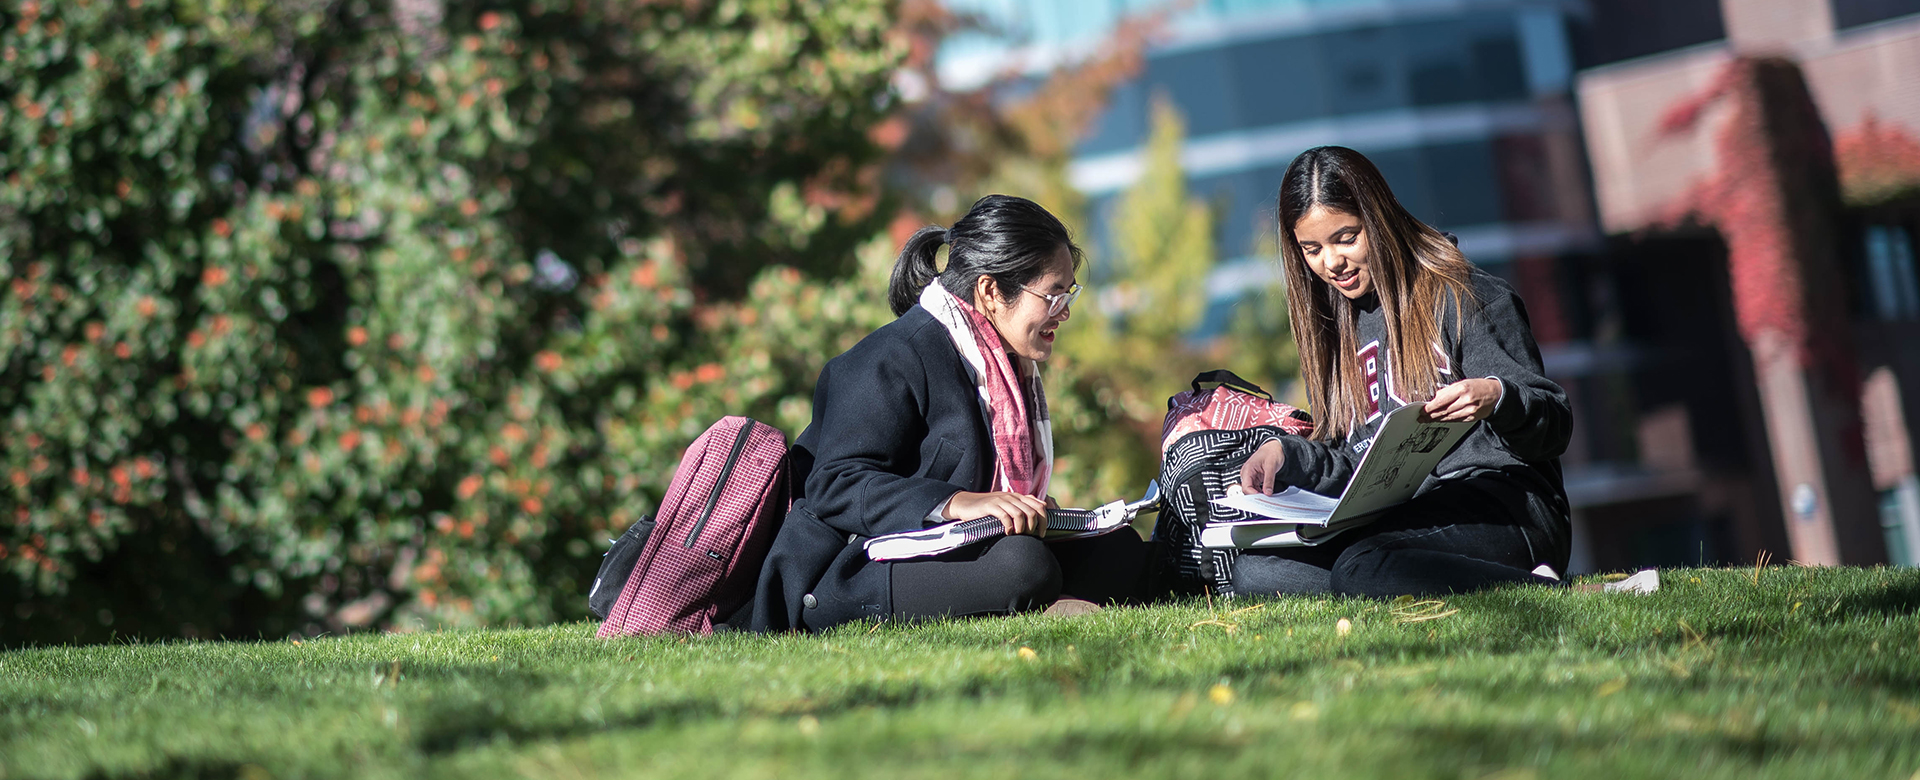 University students studying outdoors